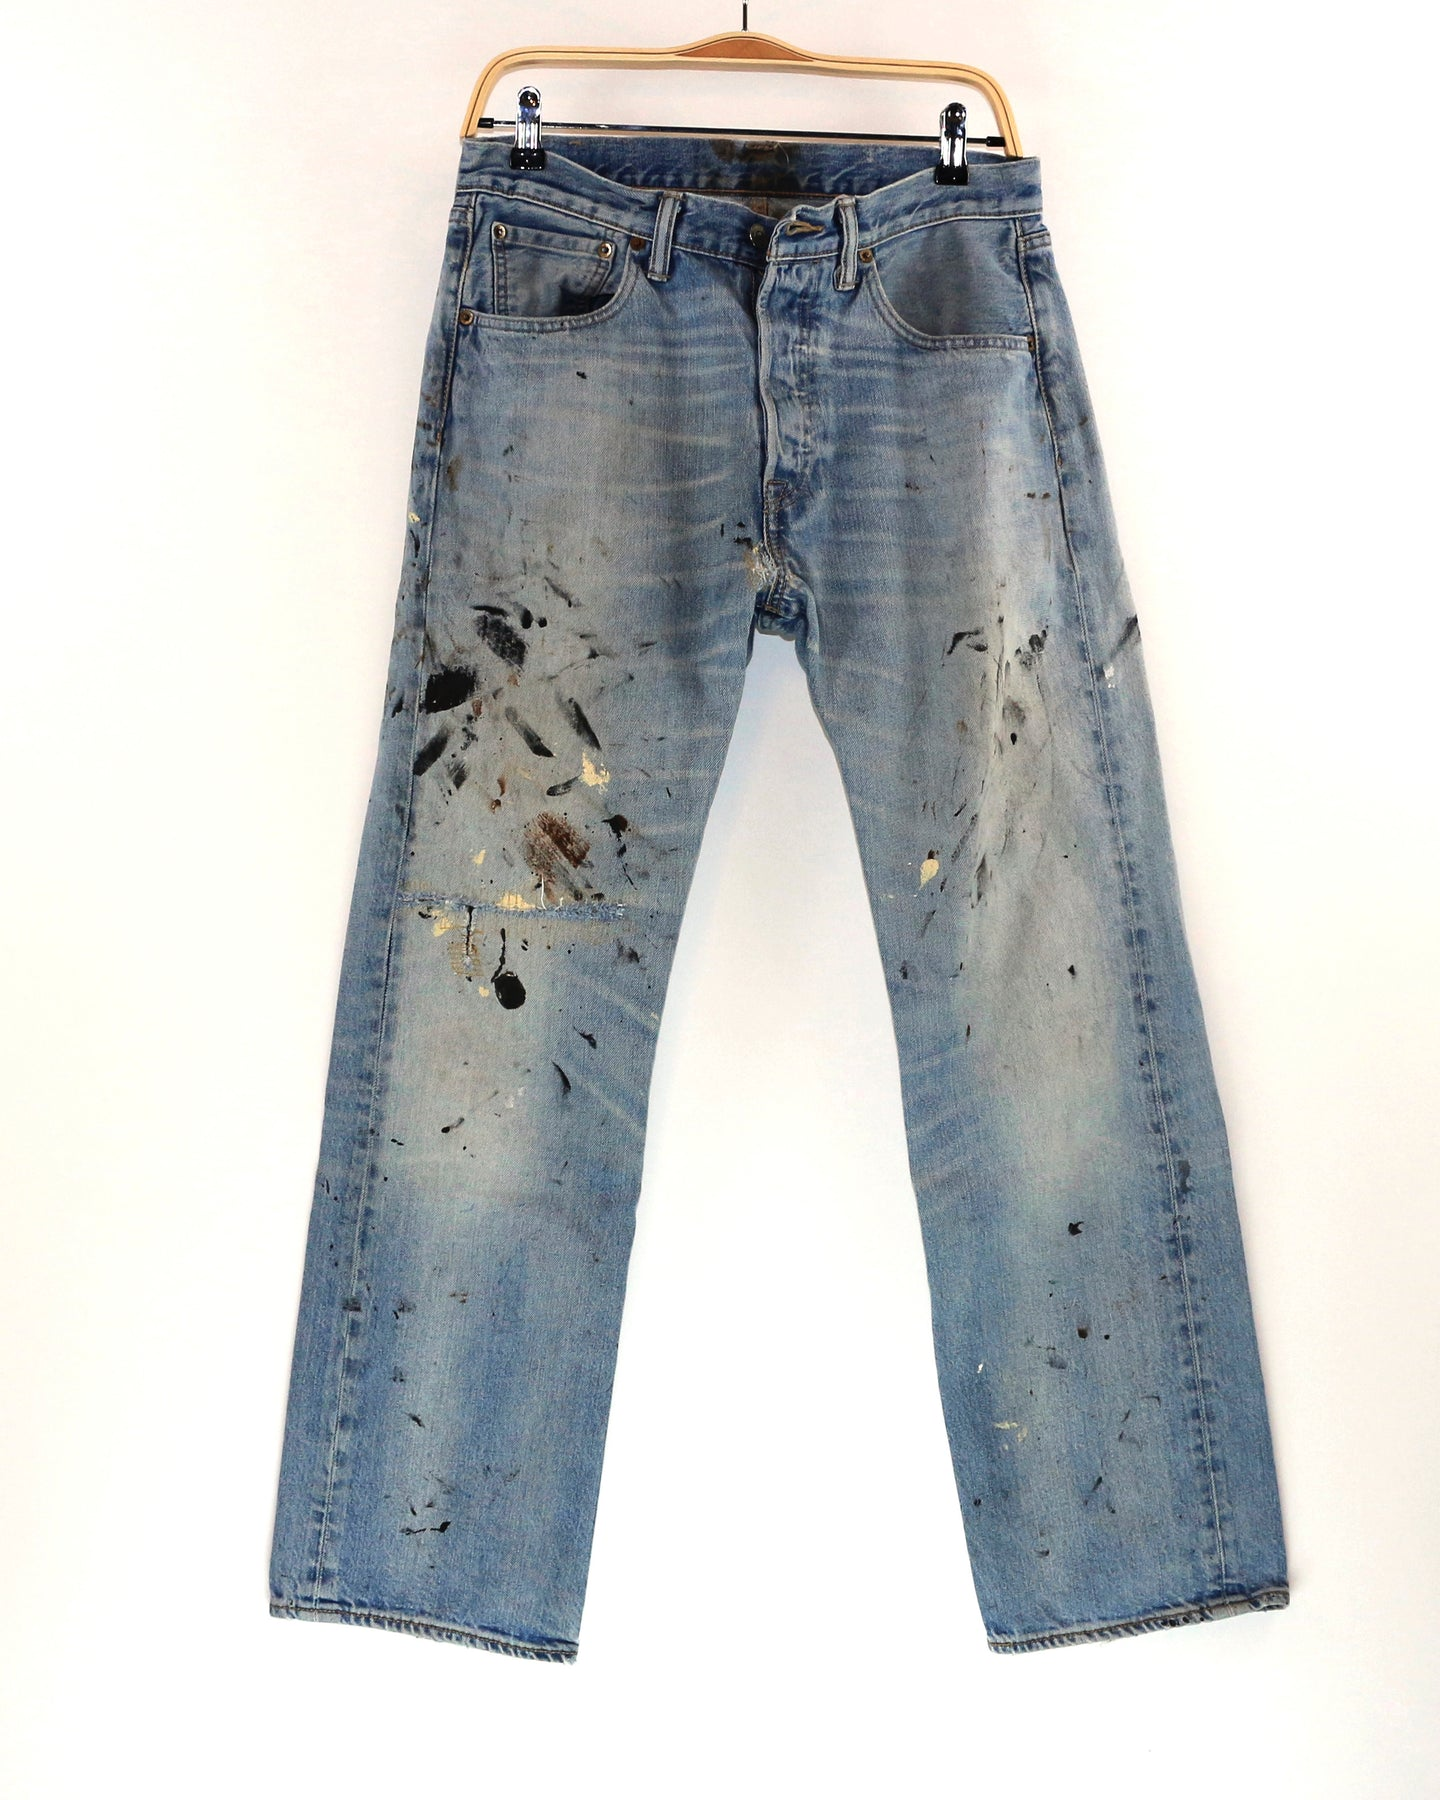 Vintage Levi's 501 Painter's Jean, Men's waist 32x29, (Unisex)_Women's 30